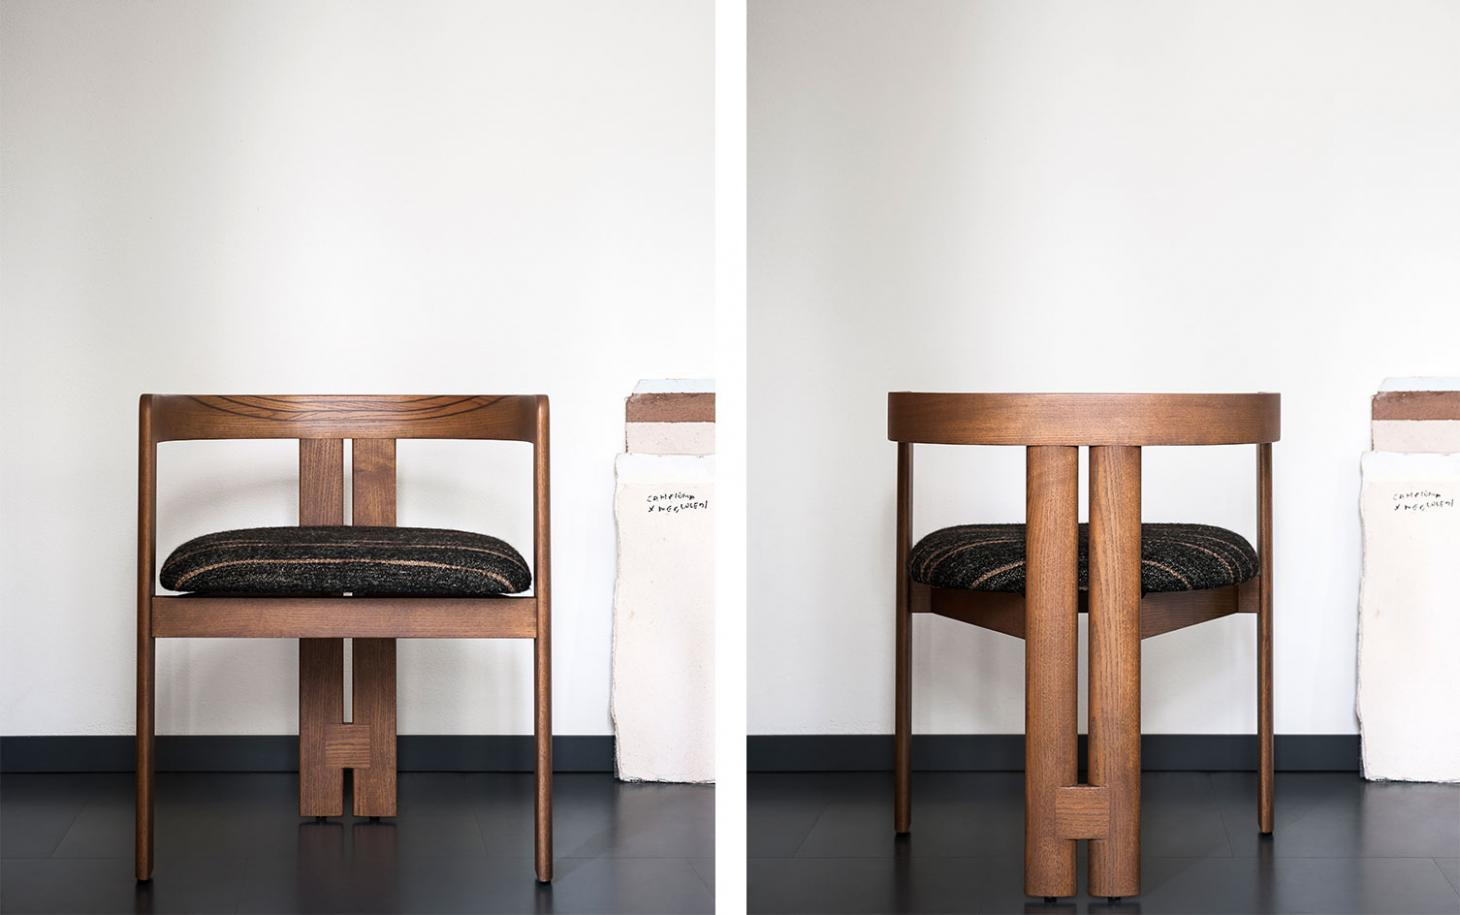 """Front and back view of the Pigreco chair by Tobia Scarpa, featuring two """"sister legs"""" joined at the back for extra stability"""